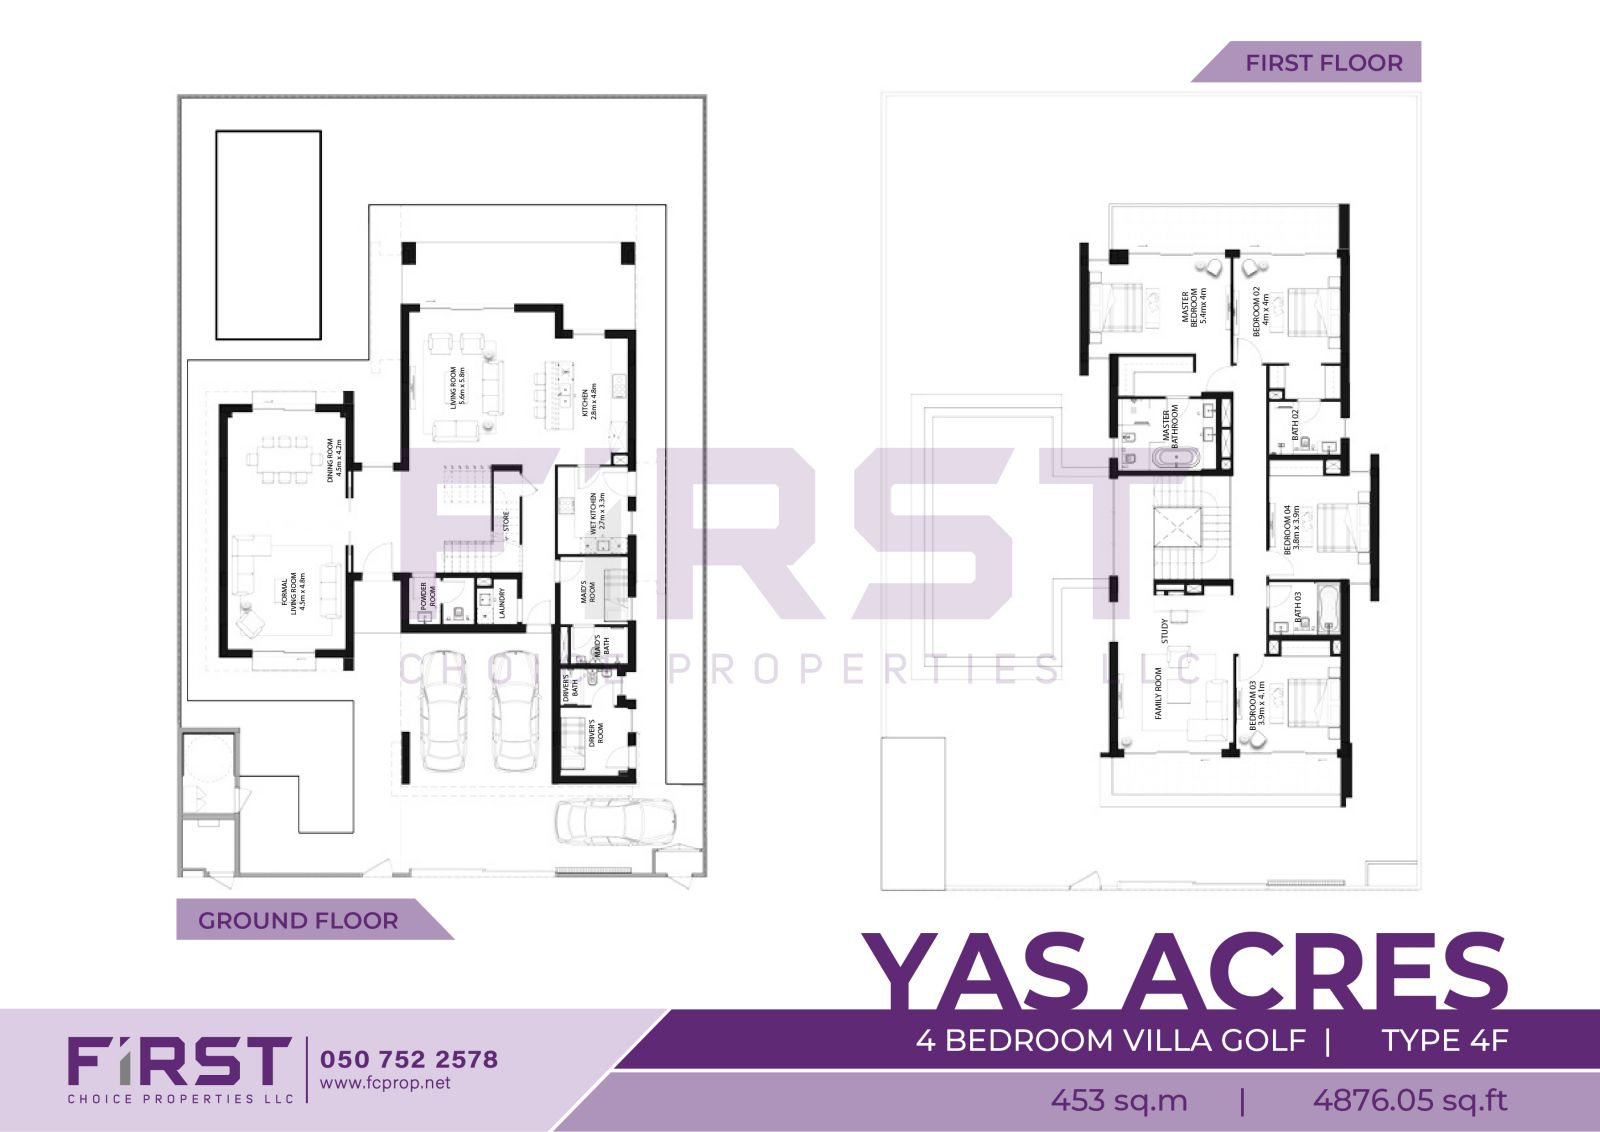 Floor Plan of 4 Bedroom Villa Golf Type 4F in Yas Acres Yas Island Abu Dhabi UAE 453 sq.m 4876.05 sq.ft.jpg